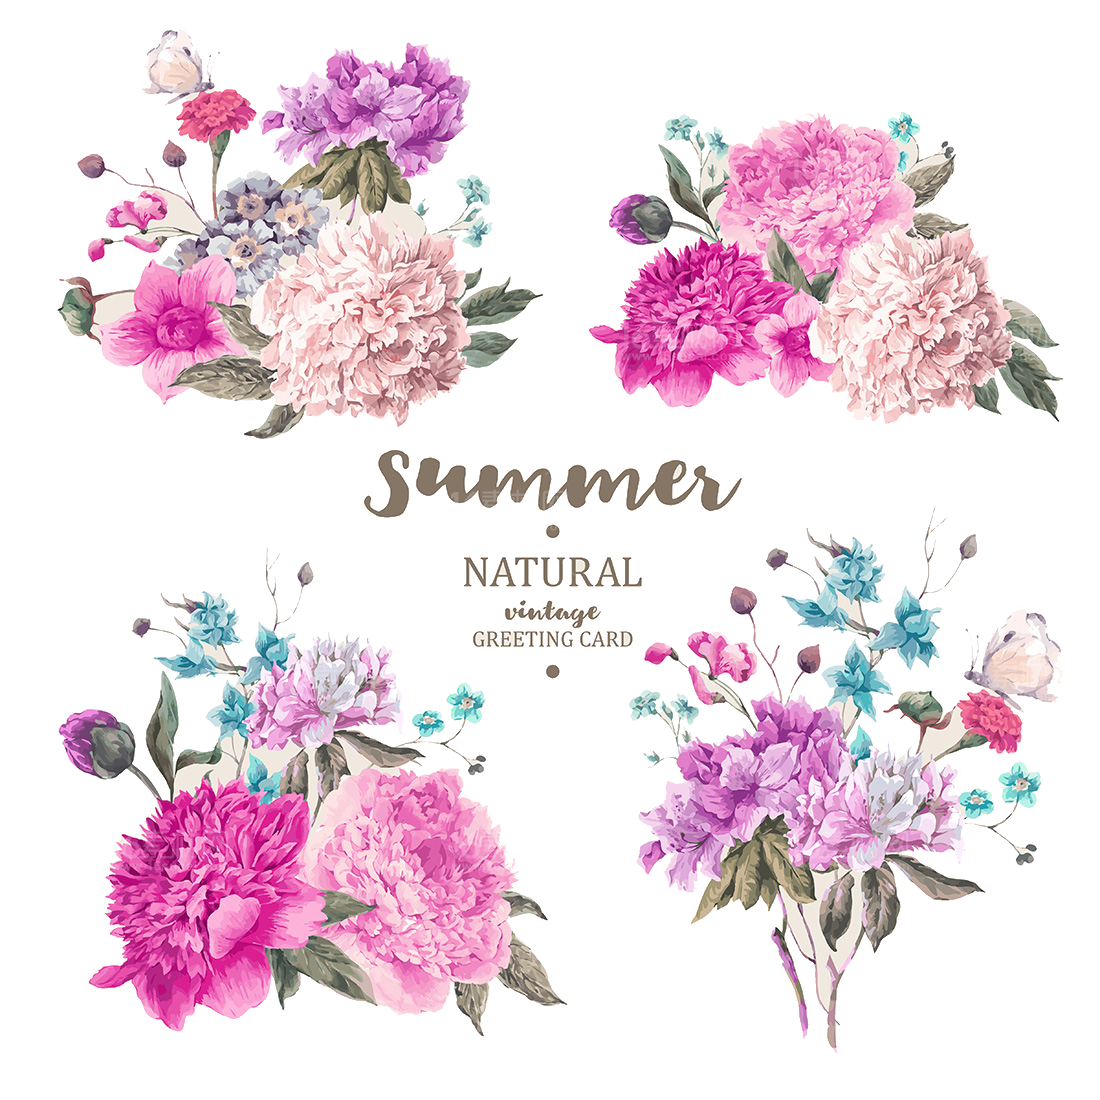 Vintage flowers vector png. Flower stock photography illustration